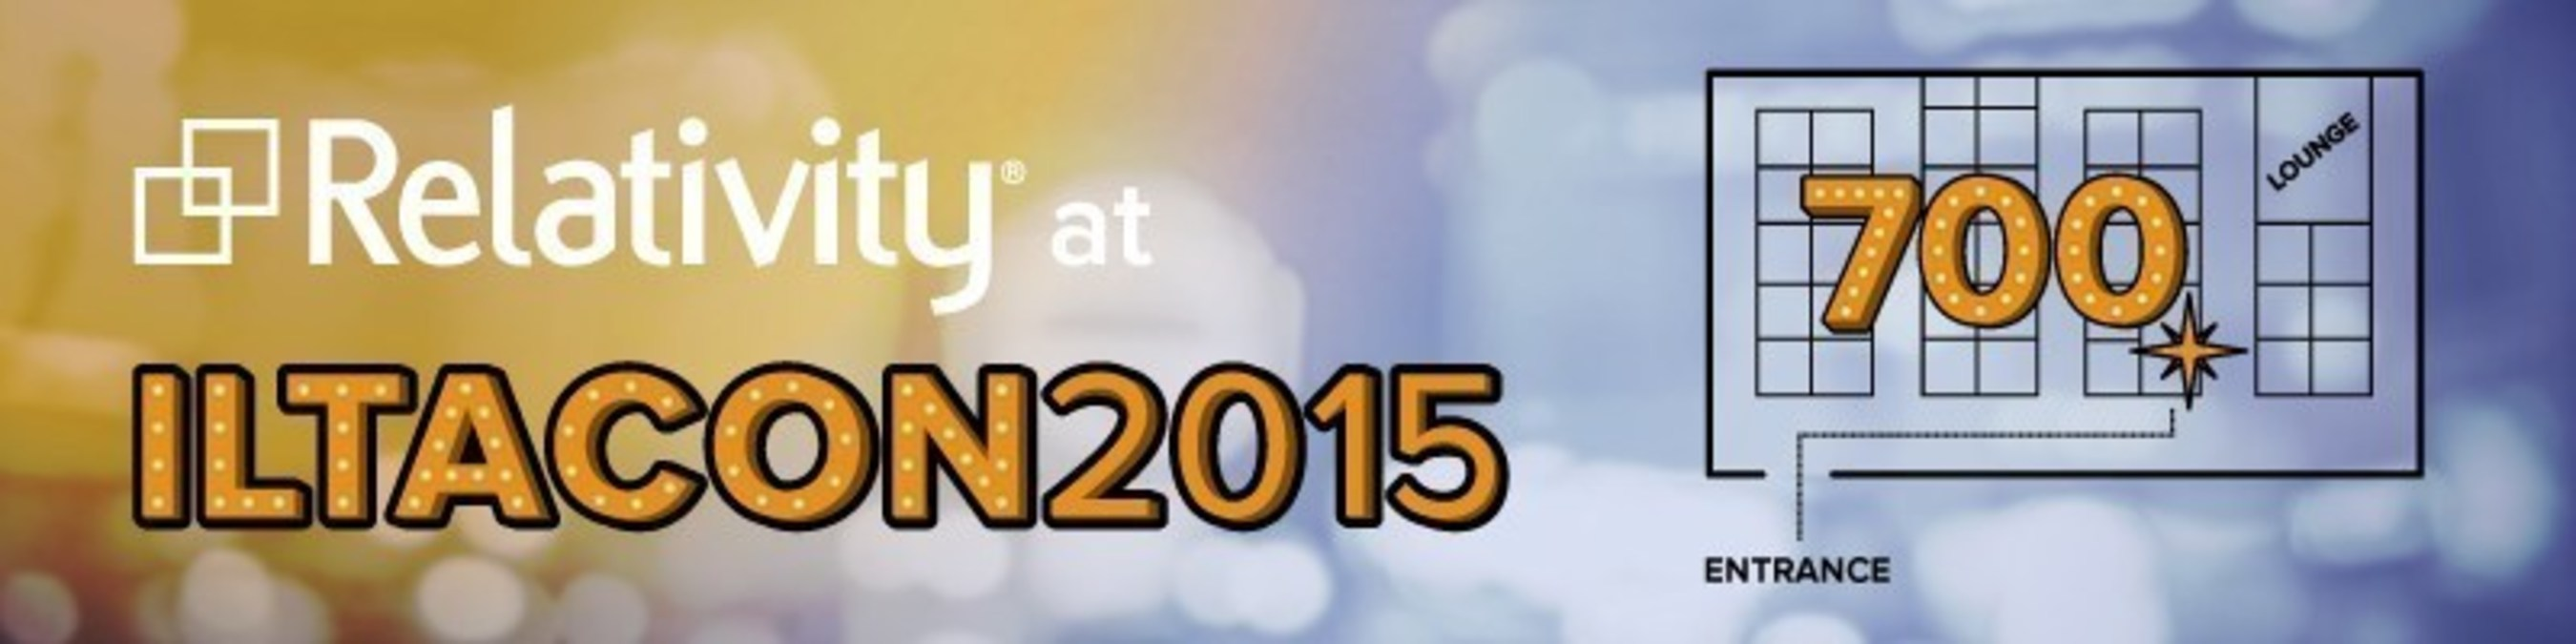 See How You Can Gain New Insight into Your Data with Relativity 9.2 at ILTACON 2015